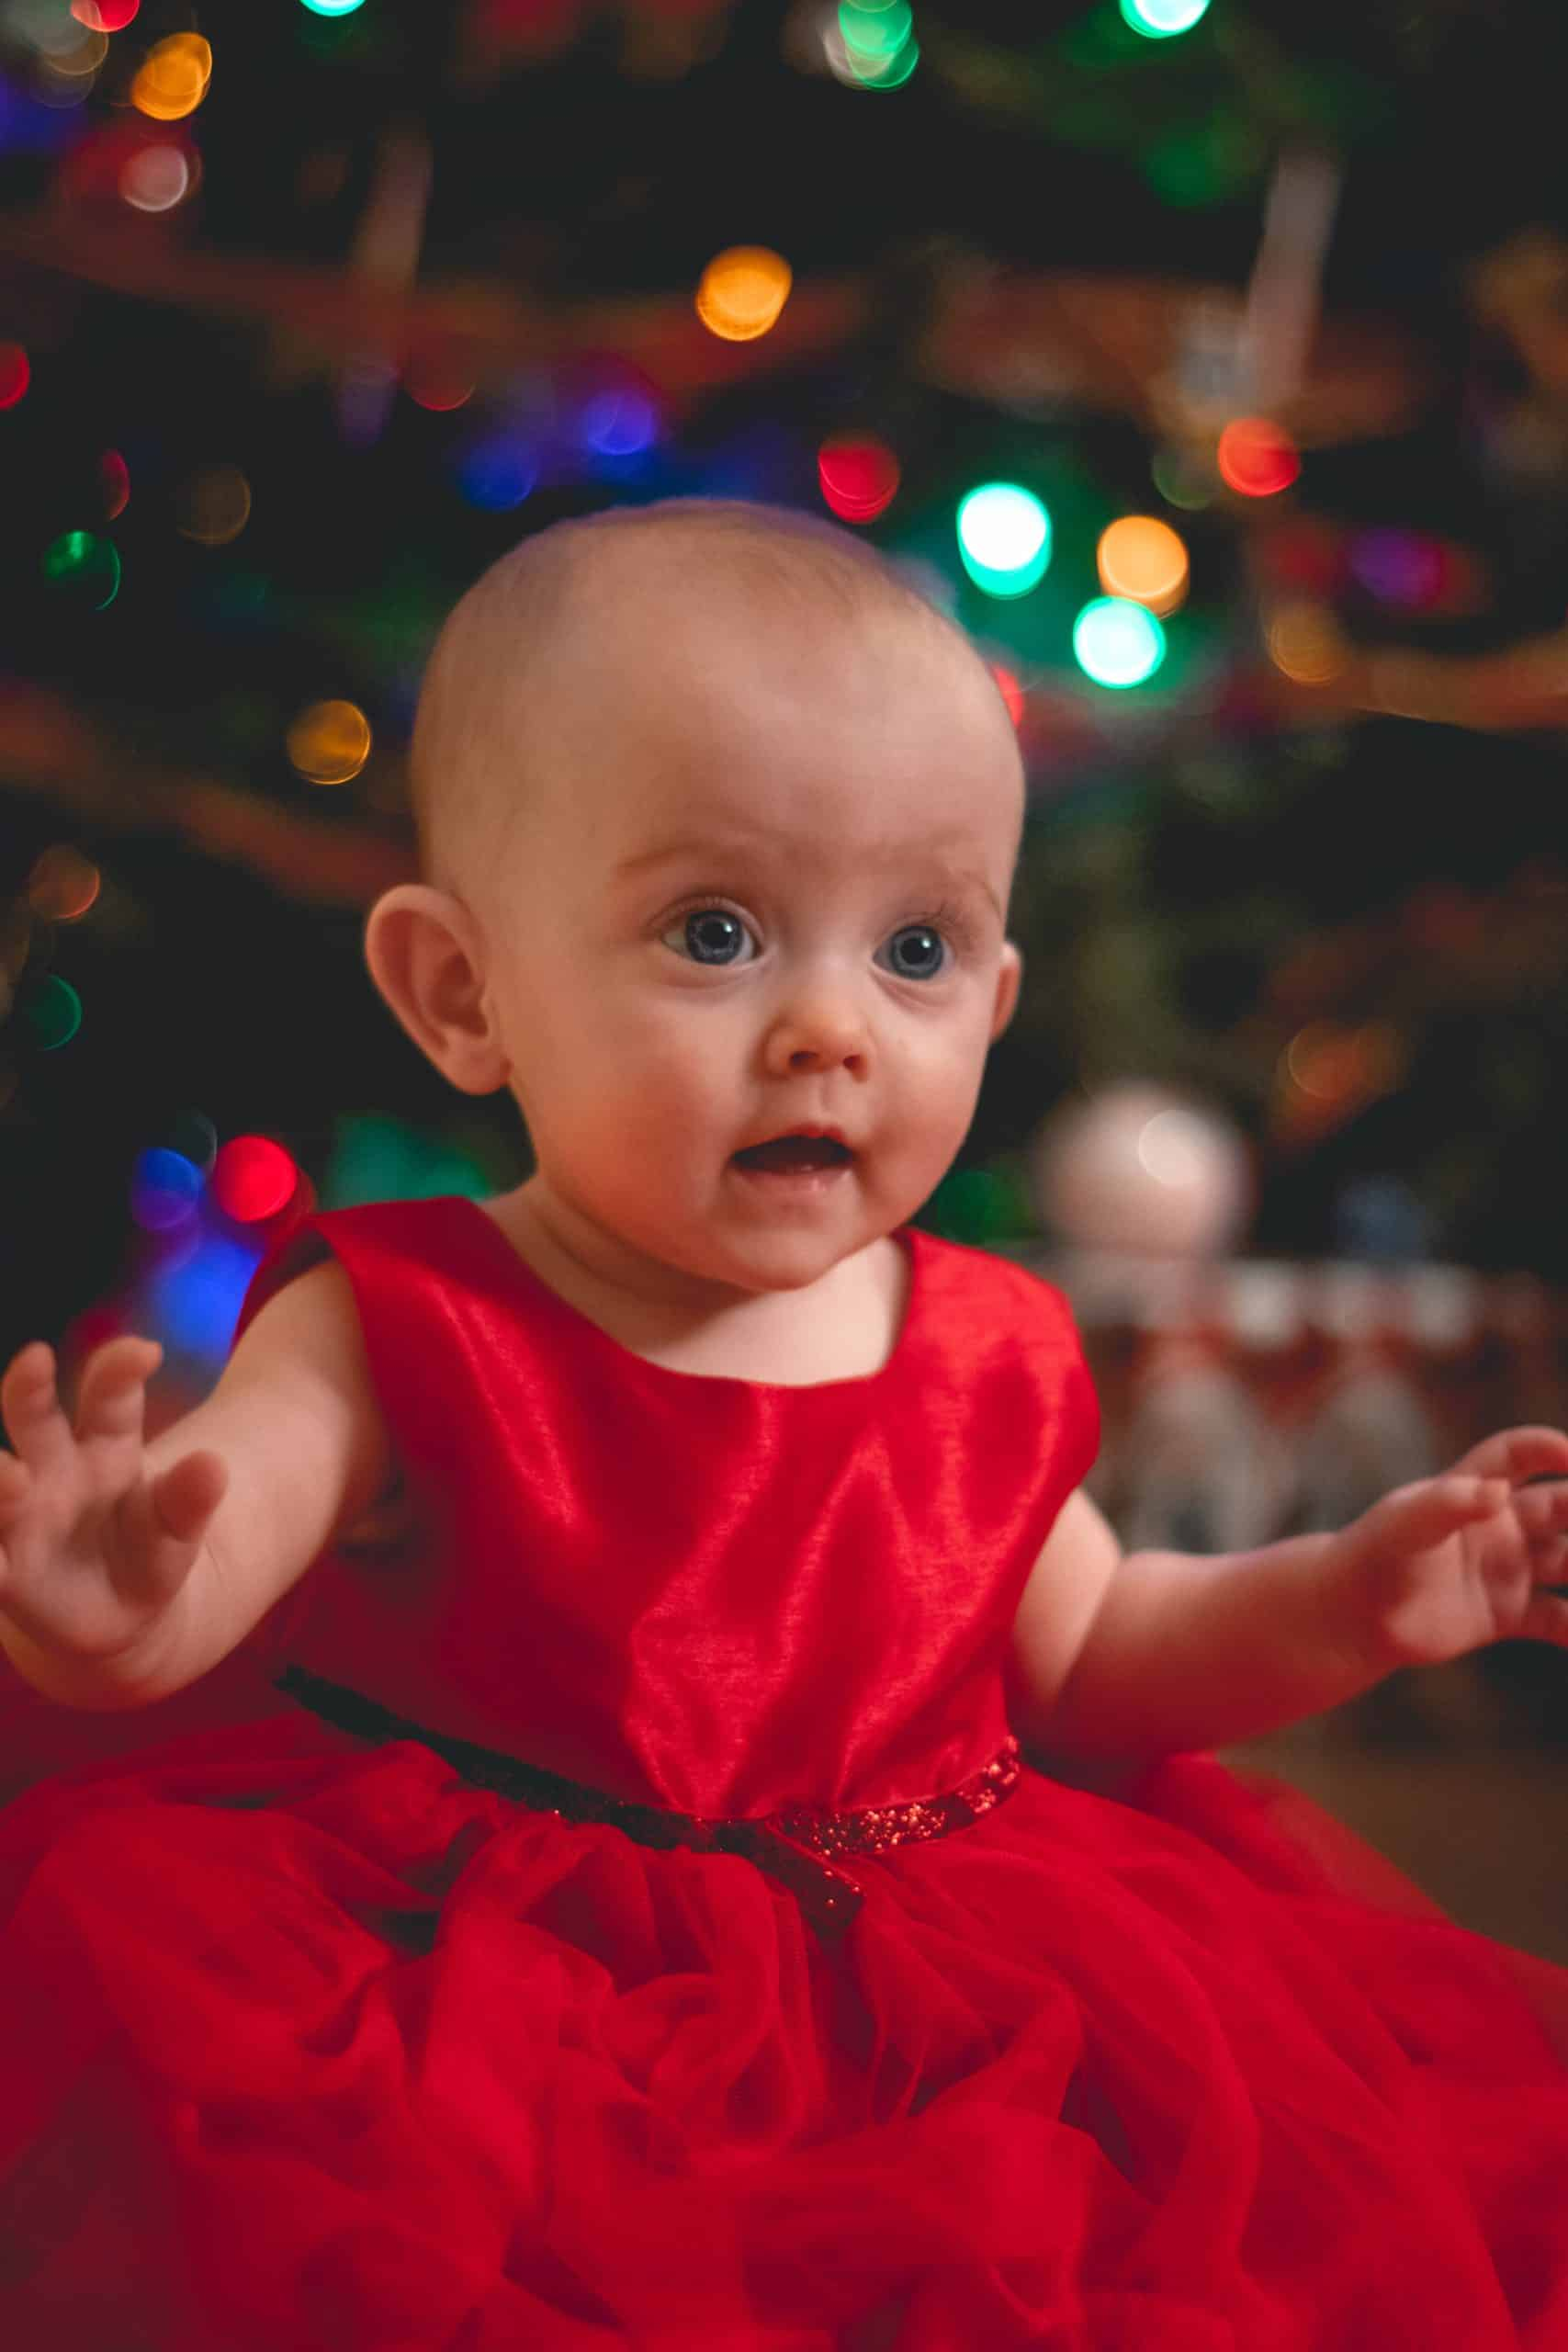 Gifts For Babies - Make Baby Girls' Births Memorable